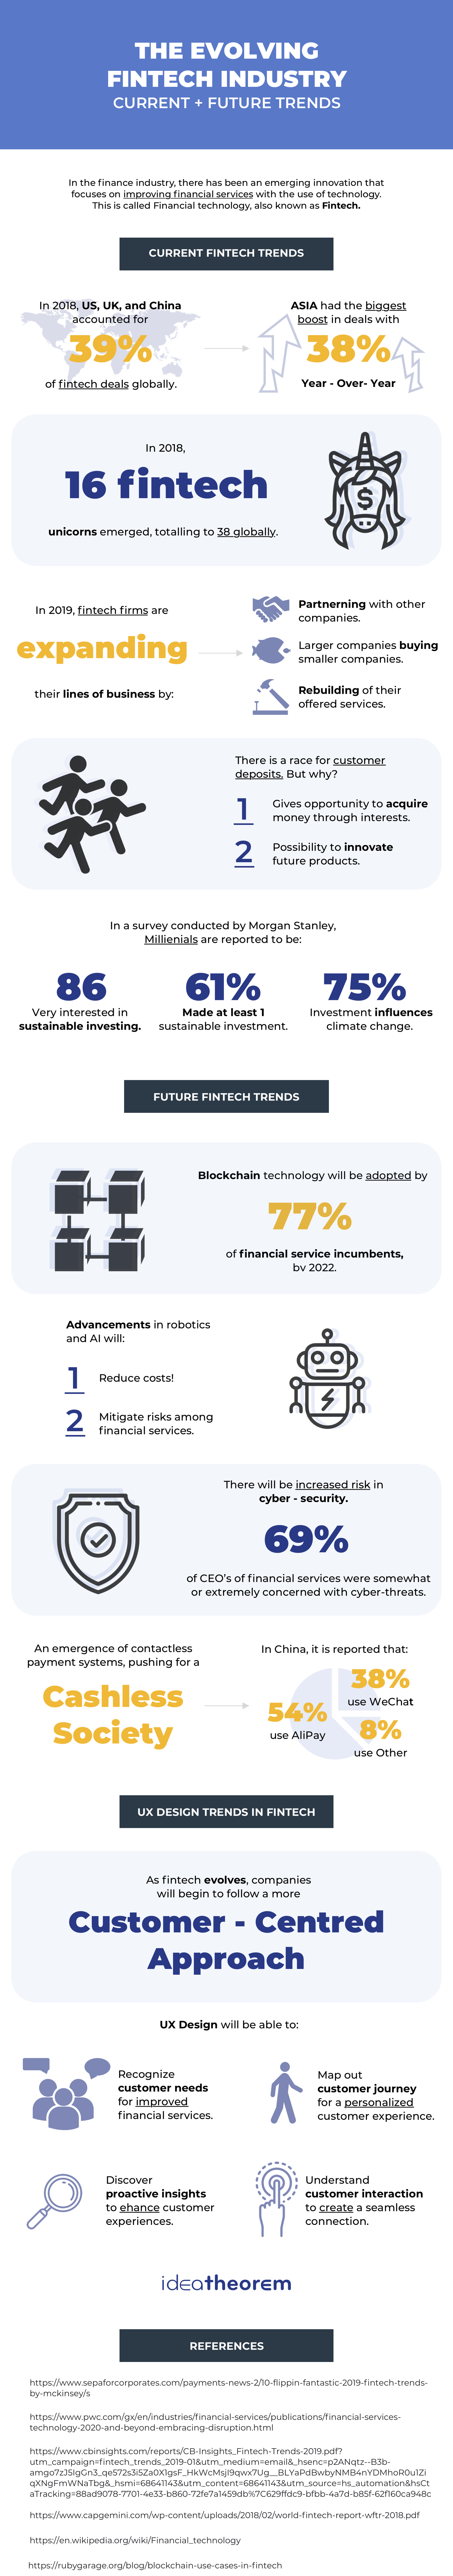 The Evolving Fintech Industry Infographic